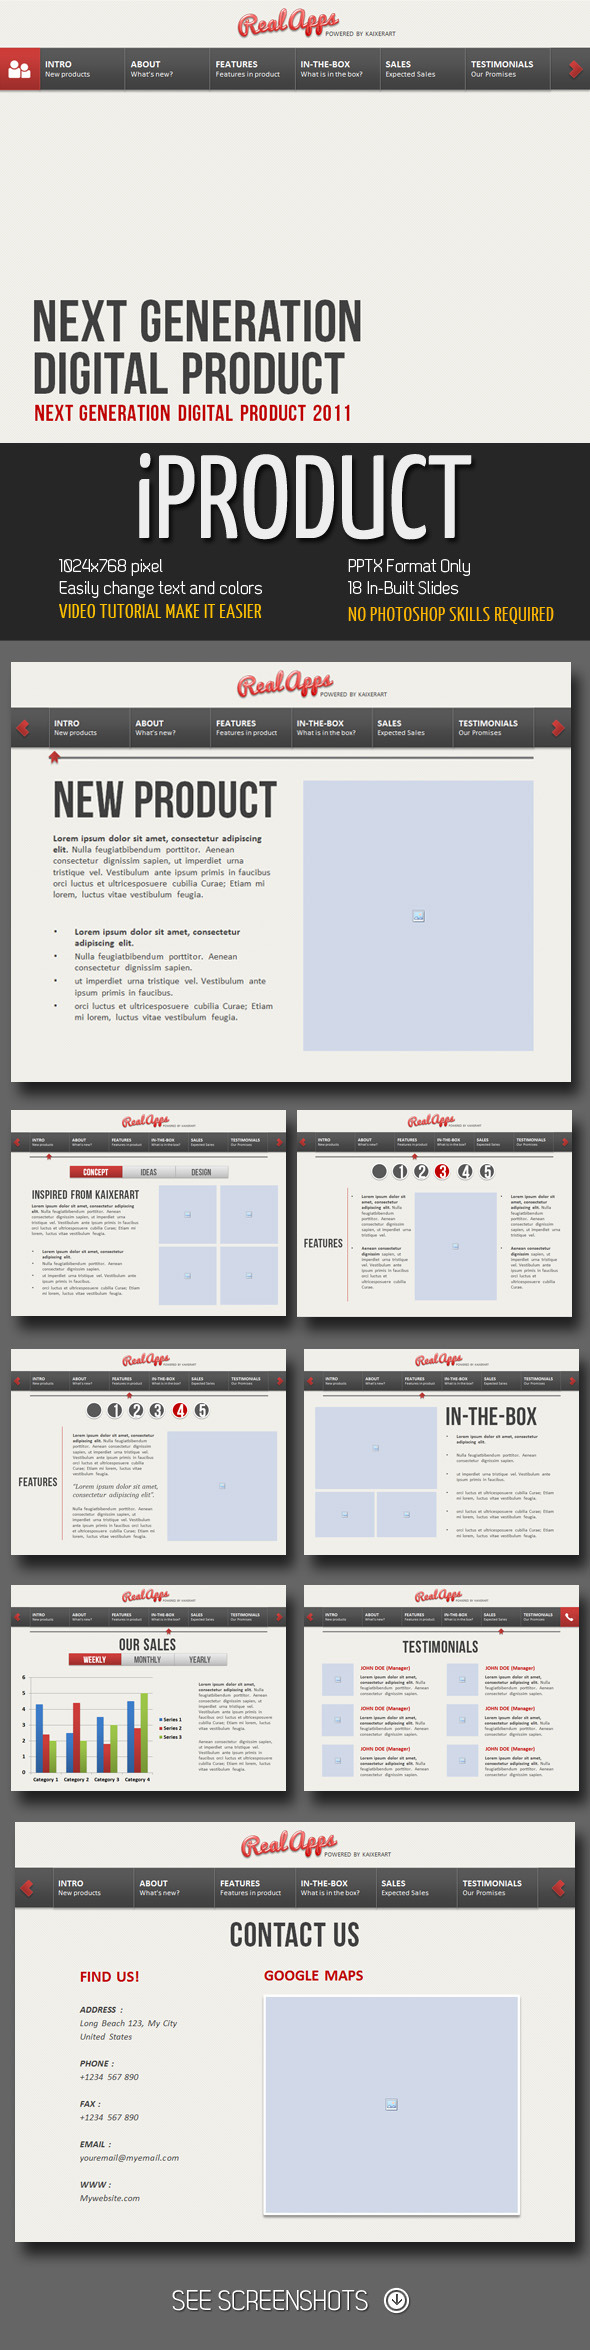 iProduct PowerPoint Presentation - Business Powerpoint Templates